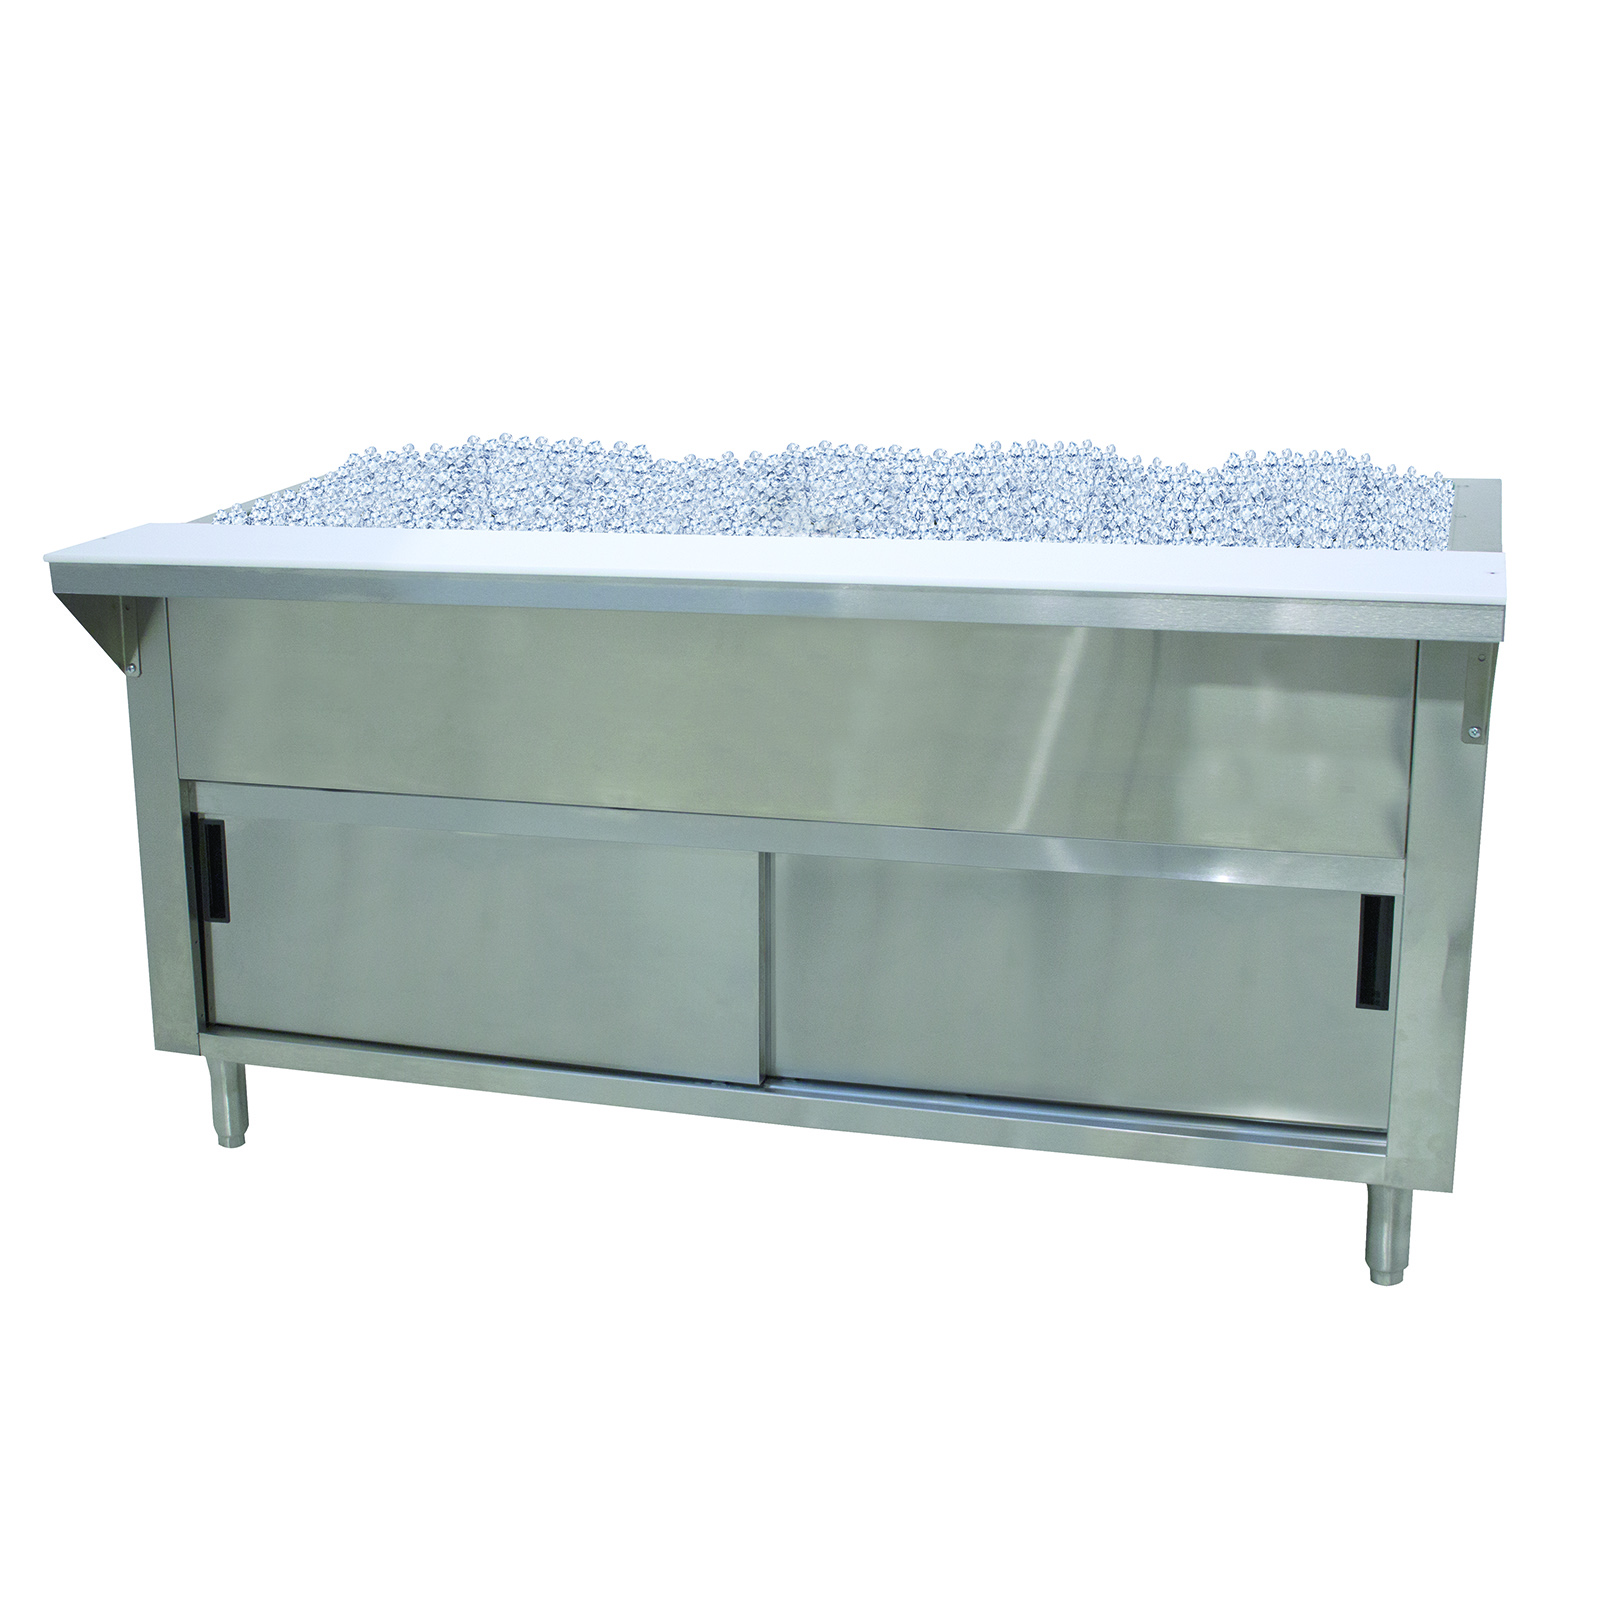 Advance Tabco CPU-2-DR serving counter, cold food